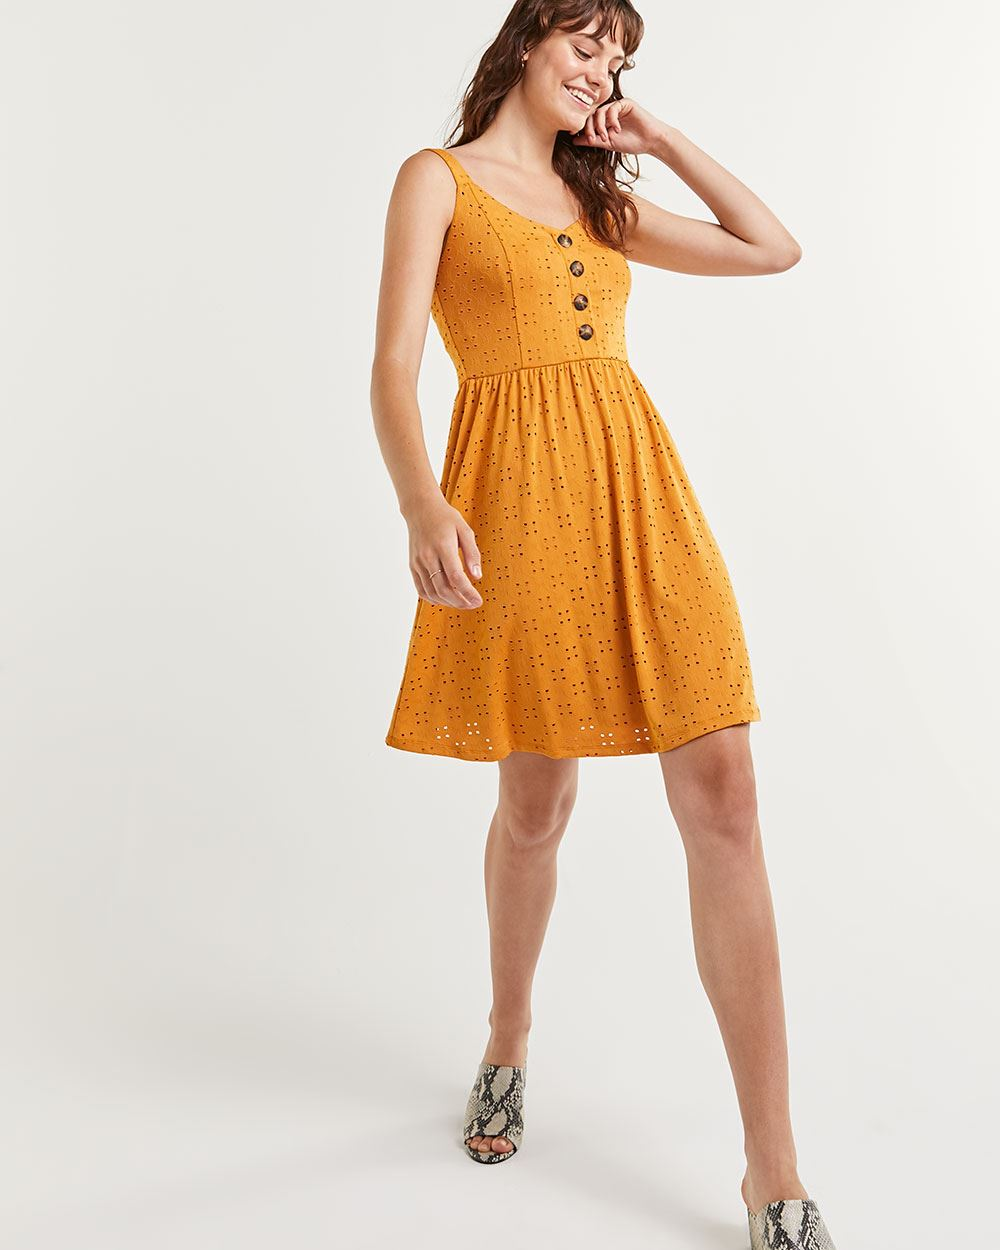 Sleeveless Eyelet Fit & Flare Dress